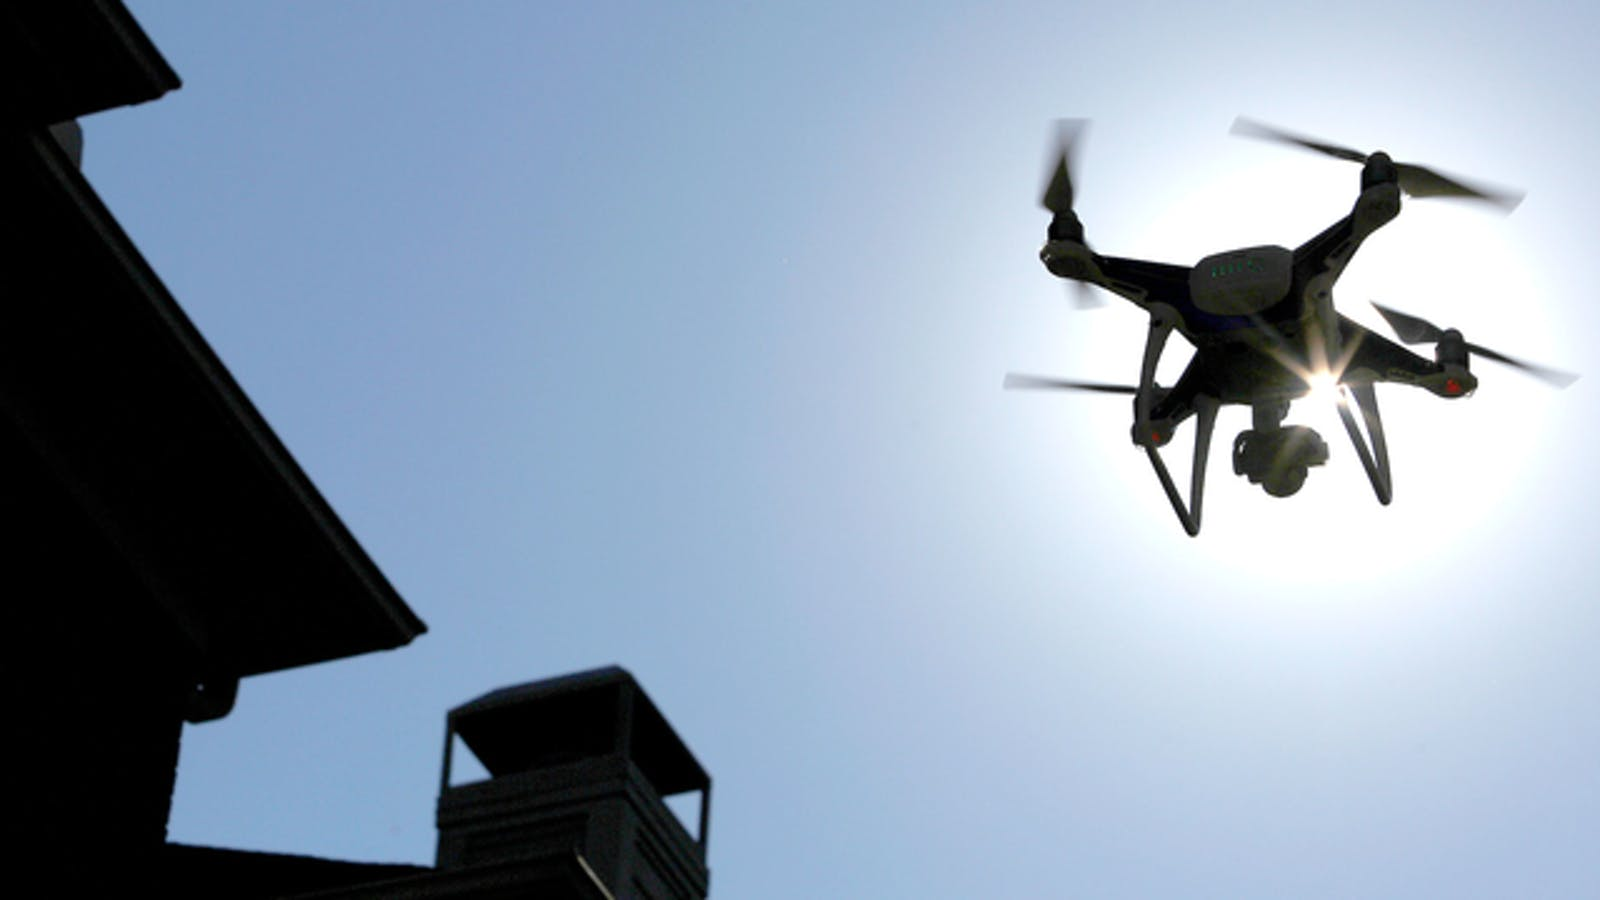 A DJI Phantom drone being flown in Texas last year. Photo by Bloomberg.